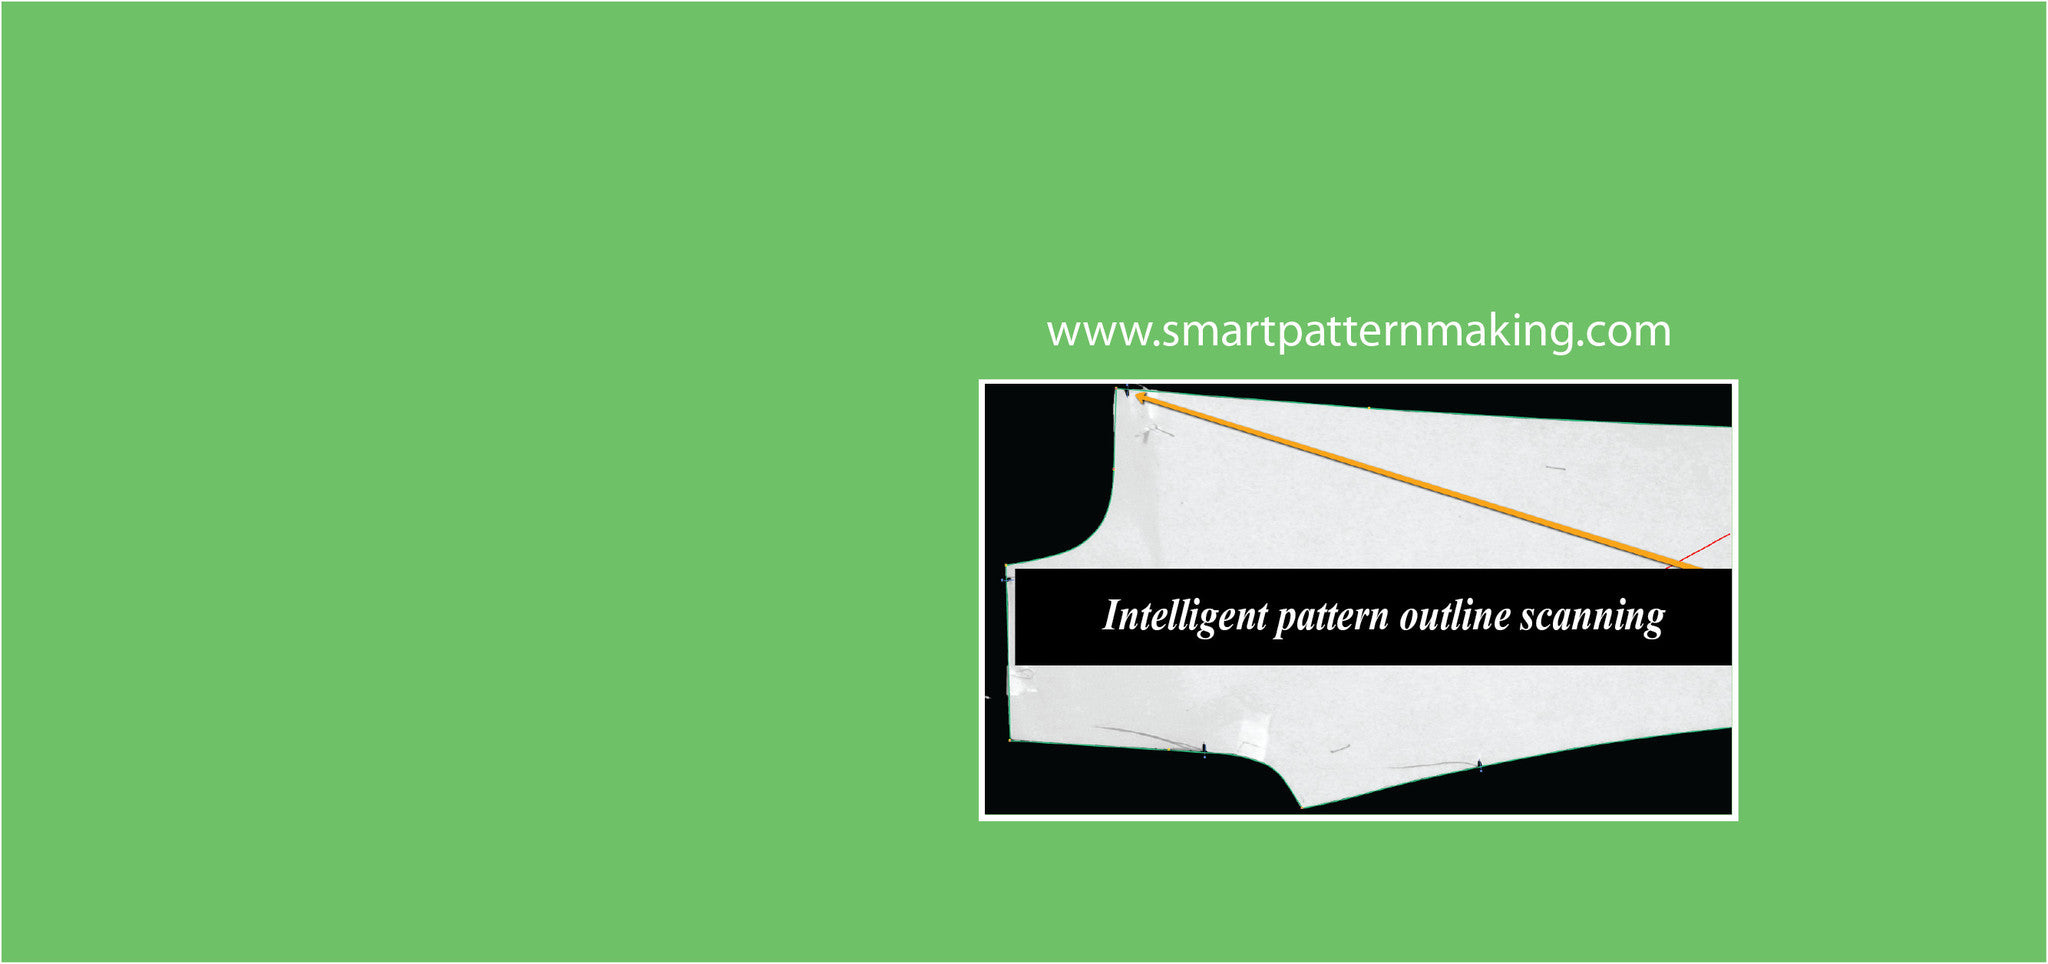 Accurate, fast and true pattern outline scanning services.